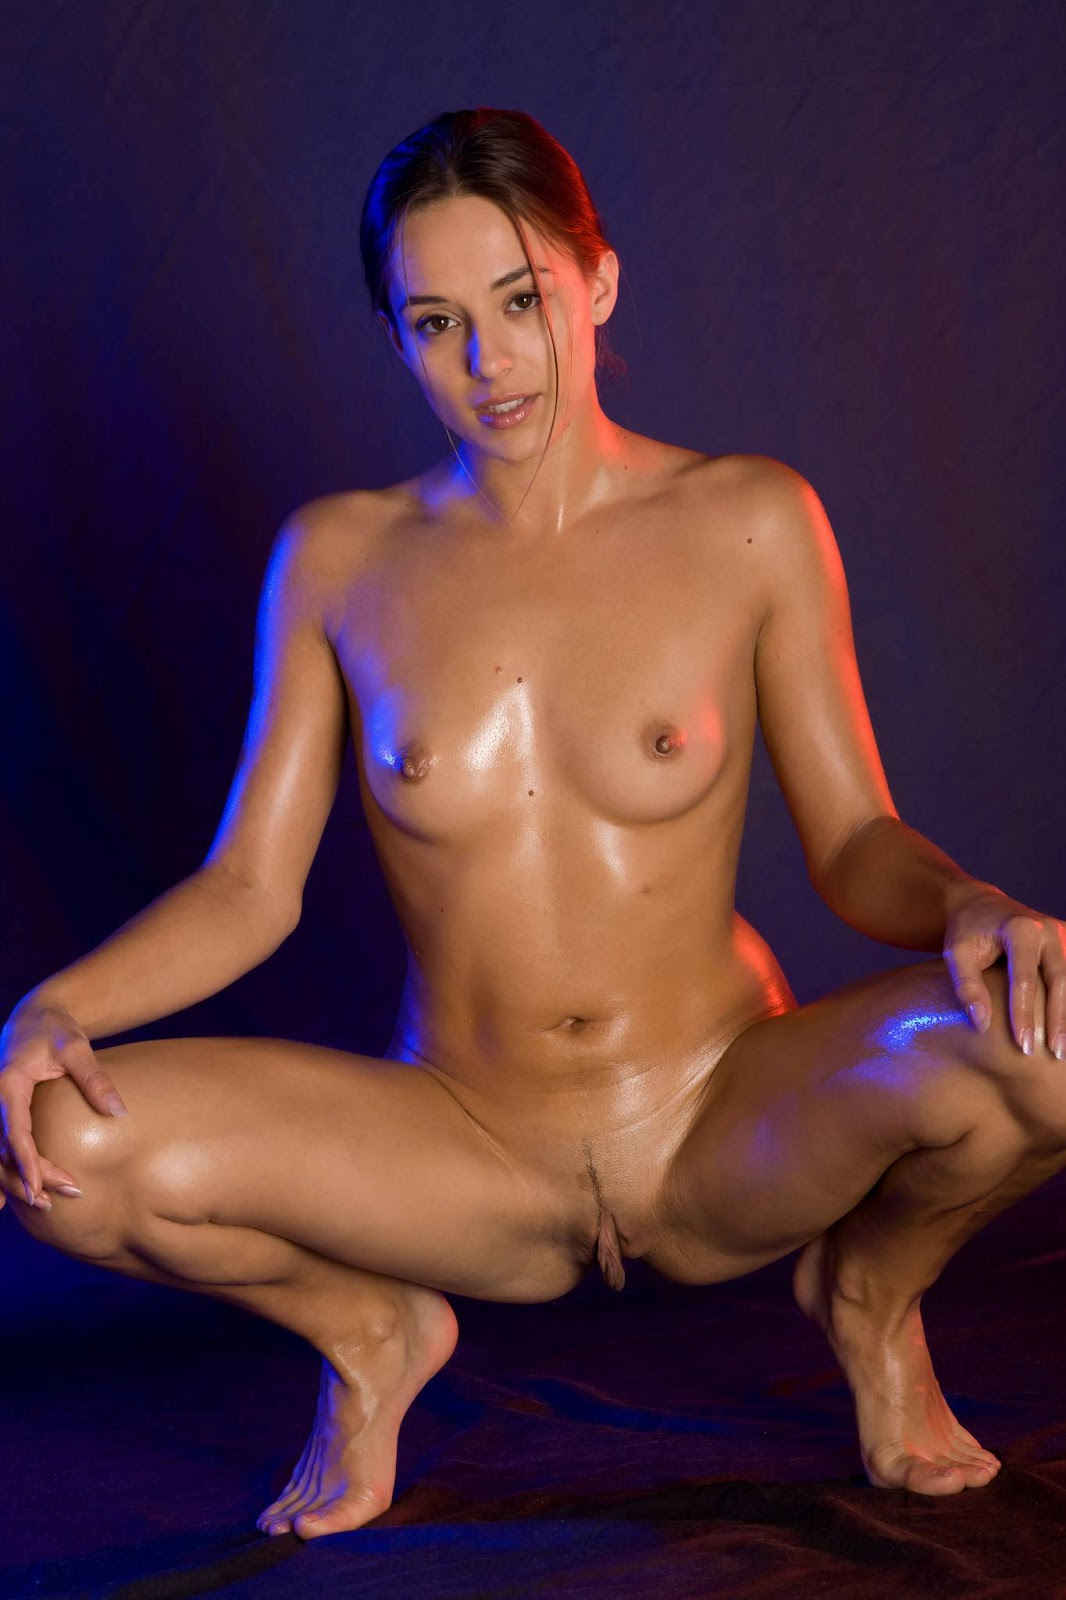 Hot denise milani nude